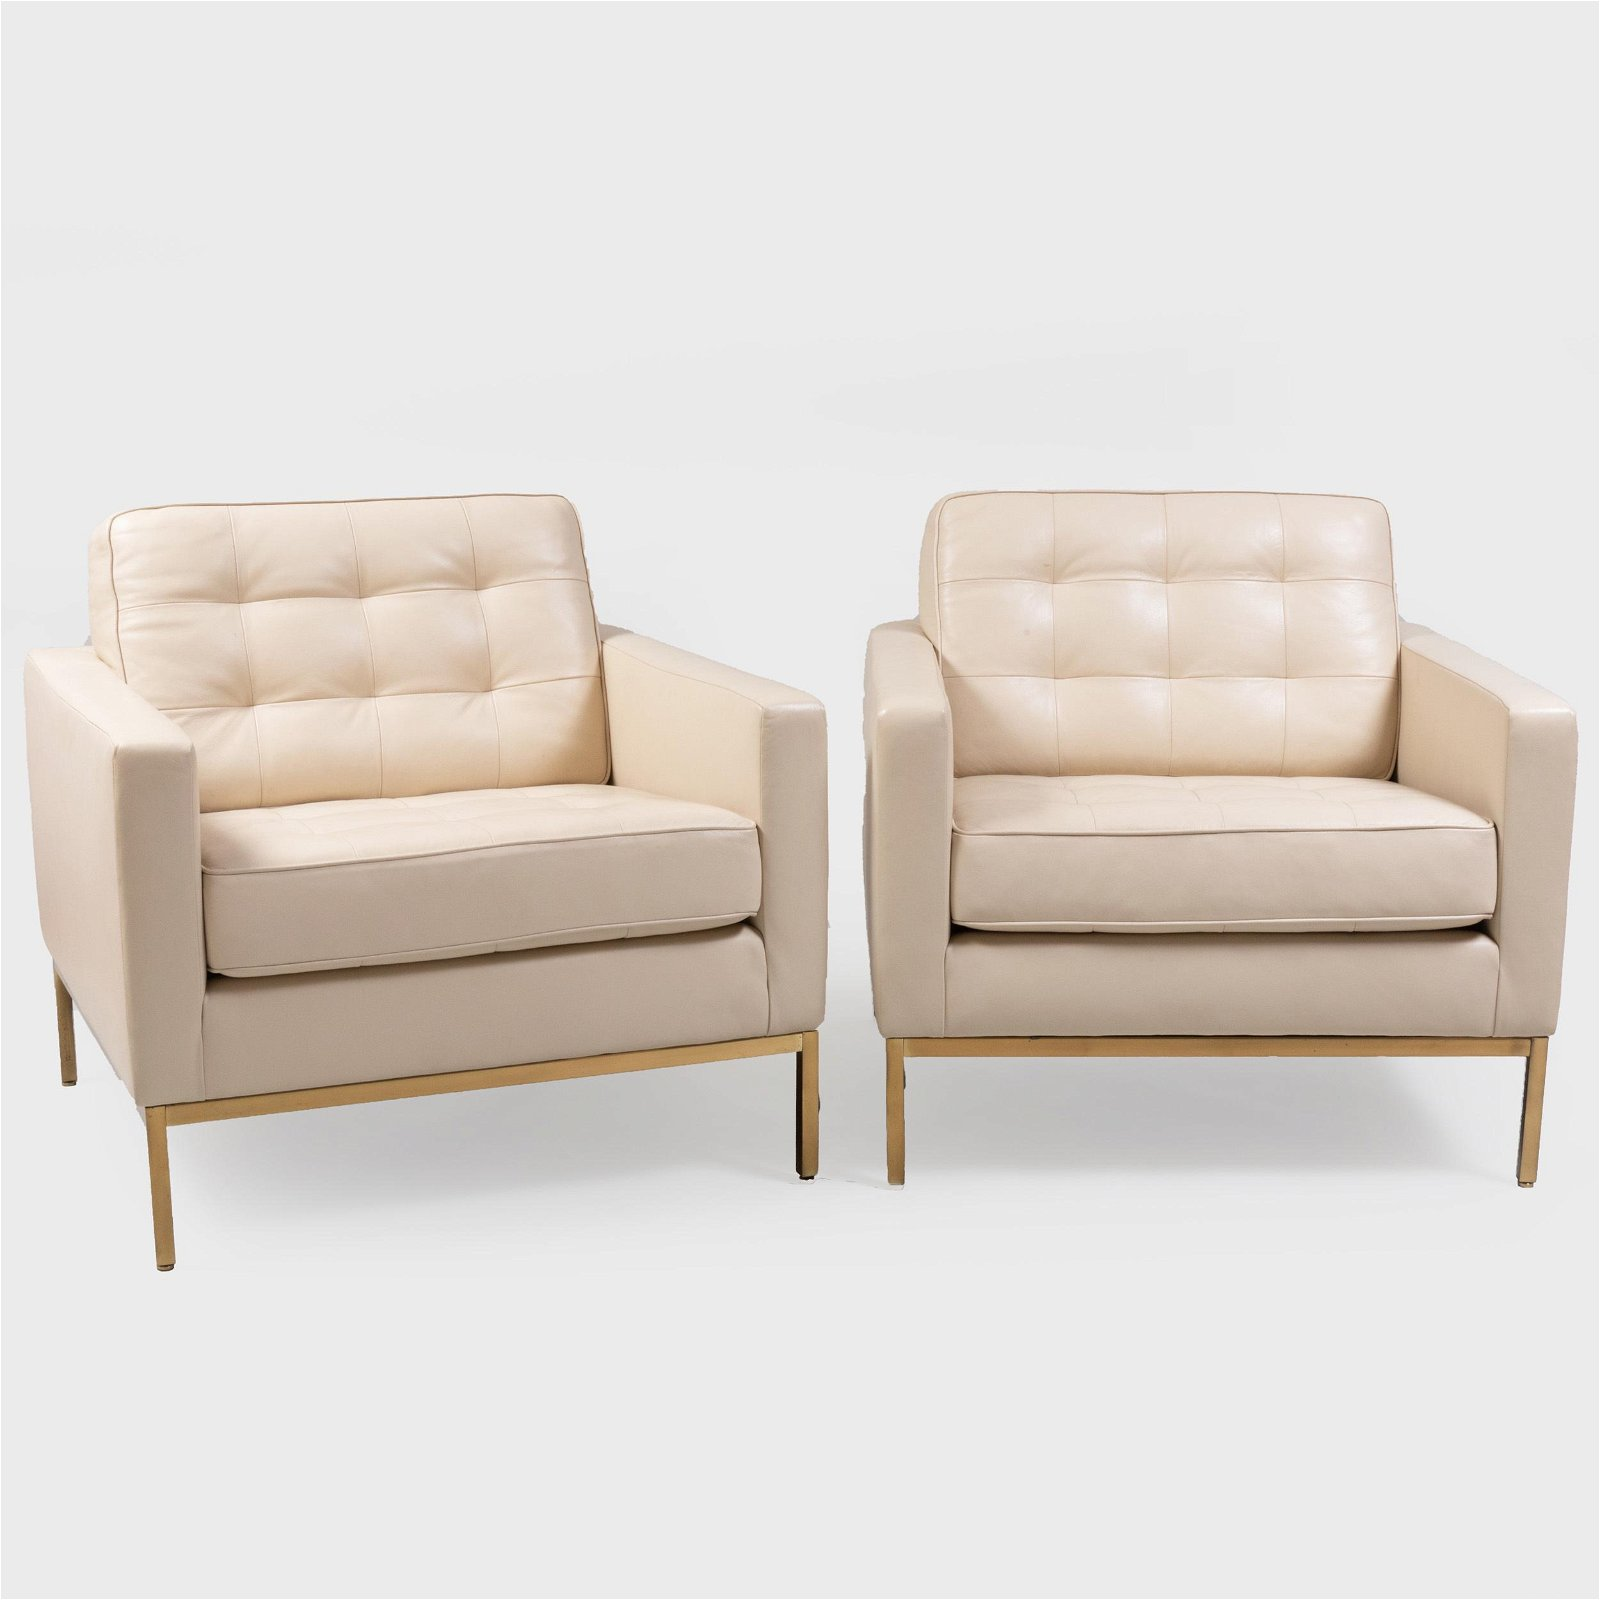 Pair of Florence Knoll Square Leather Club Chairs on